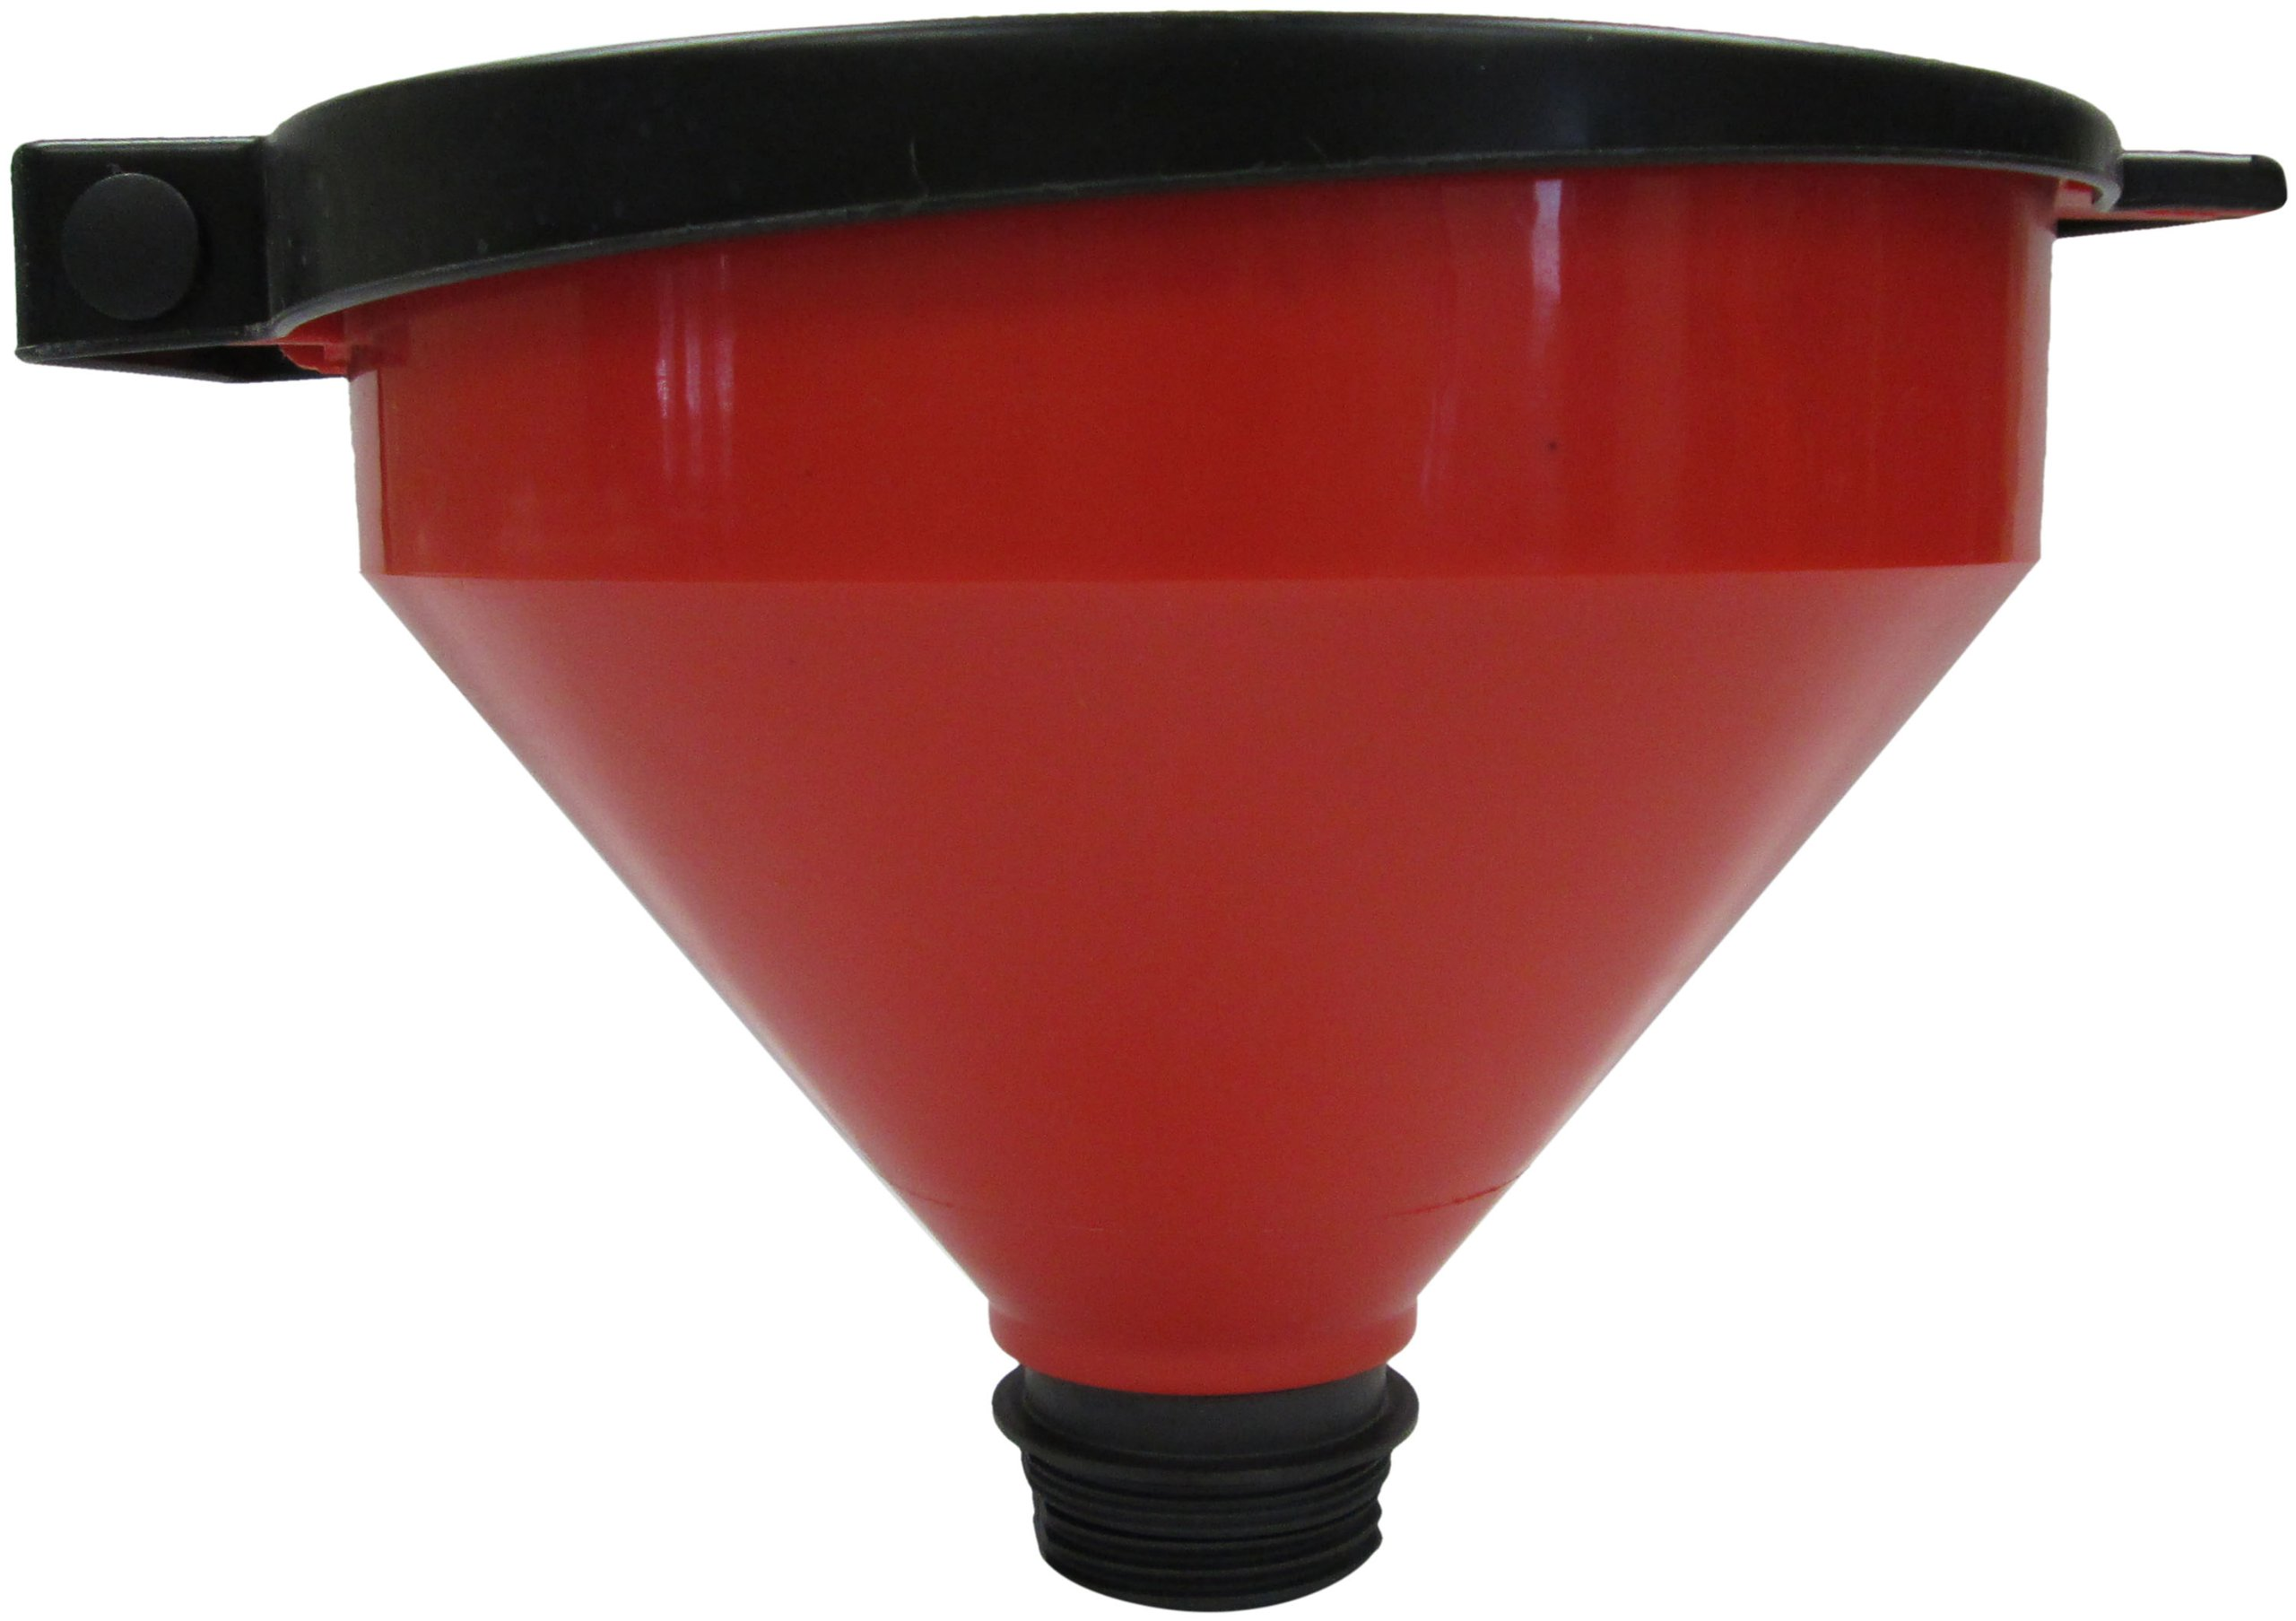 LUBEQ 02568 3 Qt. Plastic Waste Oil Funnel with Lid